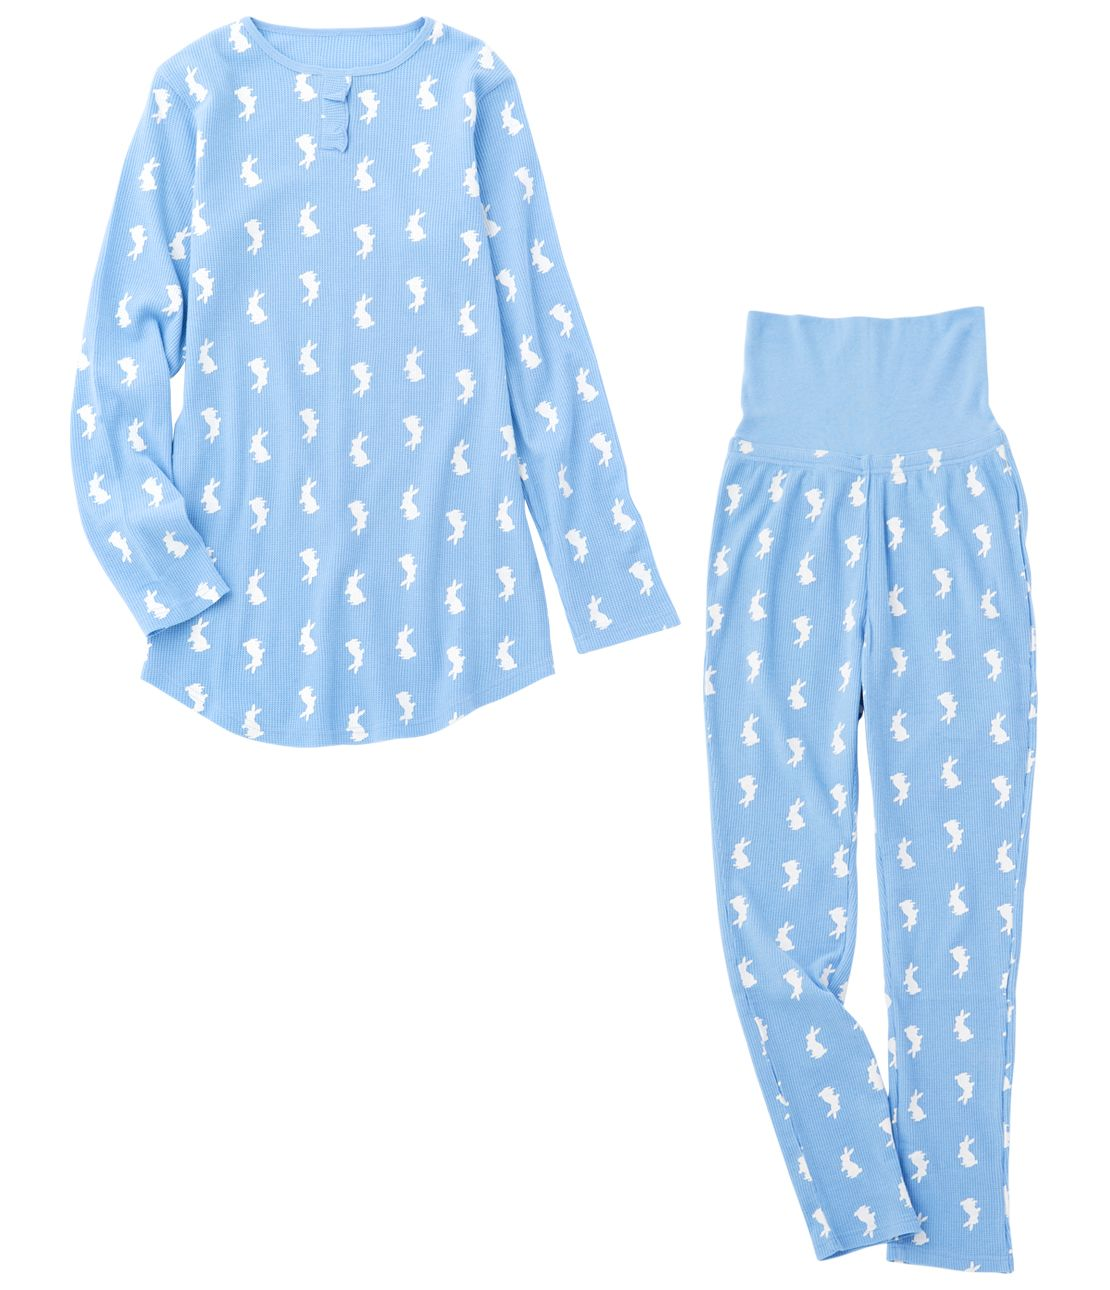 YM thermal HARA Maki pajamas